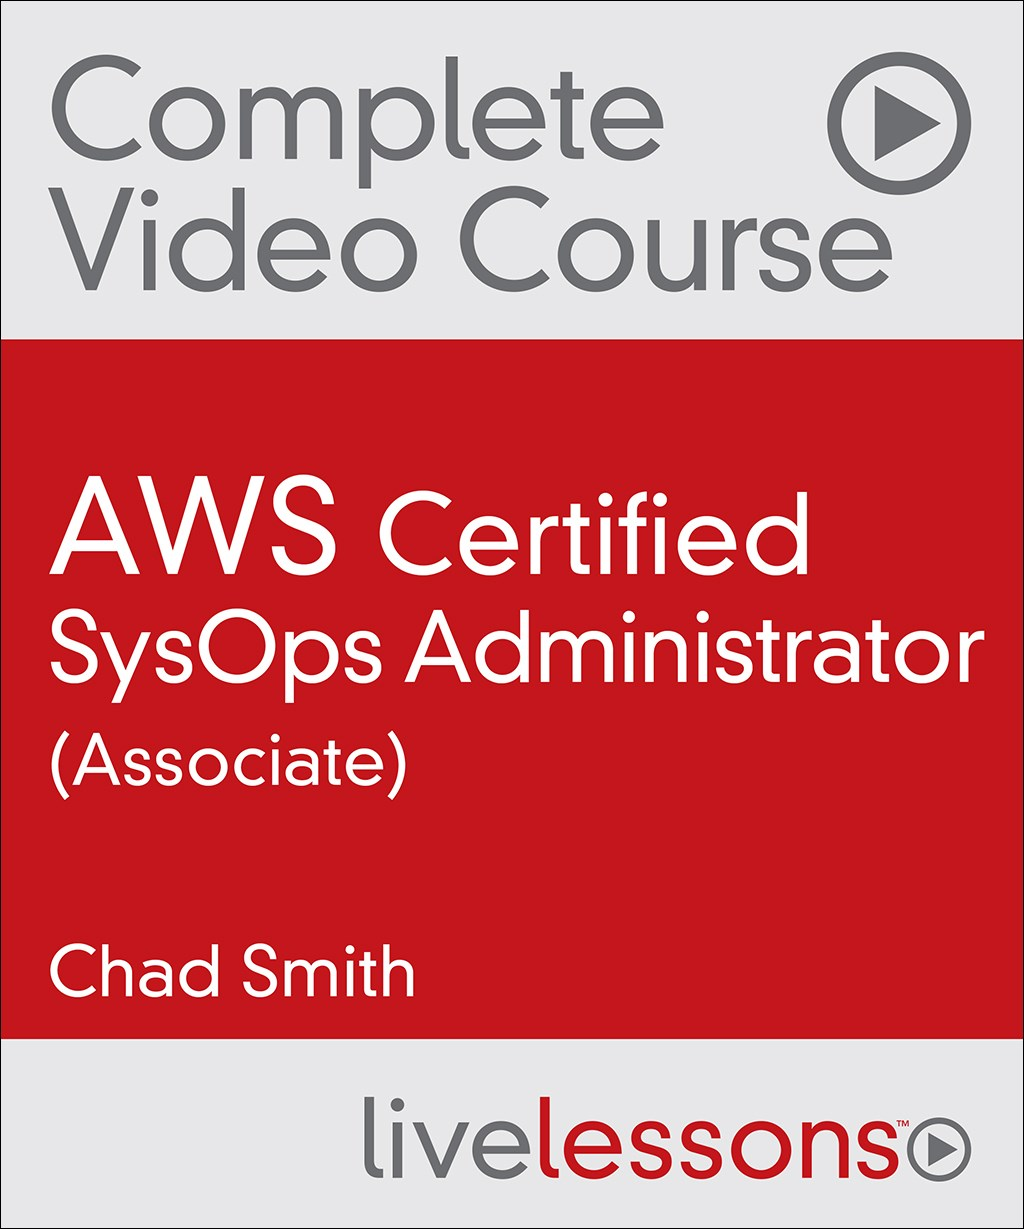 AWS Certified SysOps Administrator (Associate) Complete Video Course